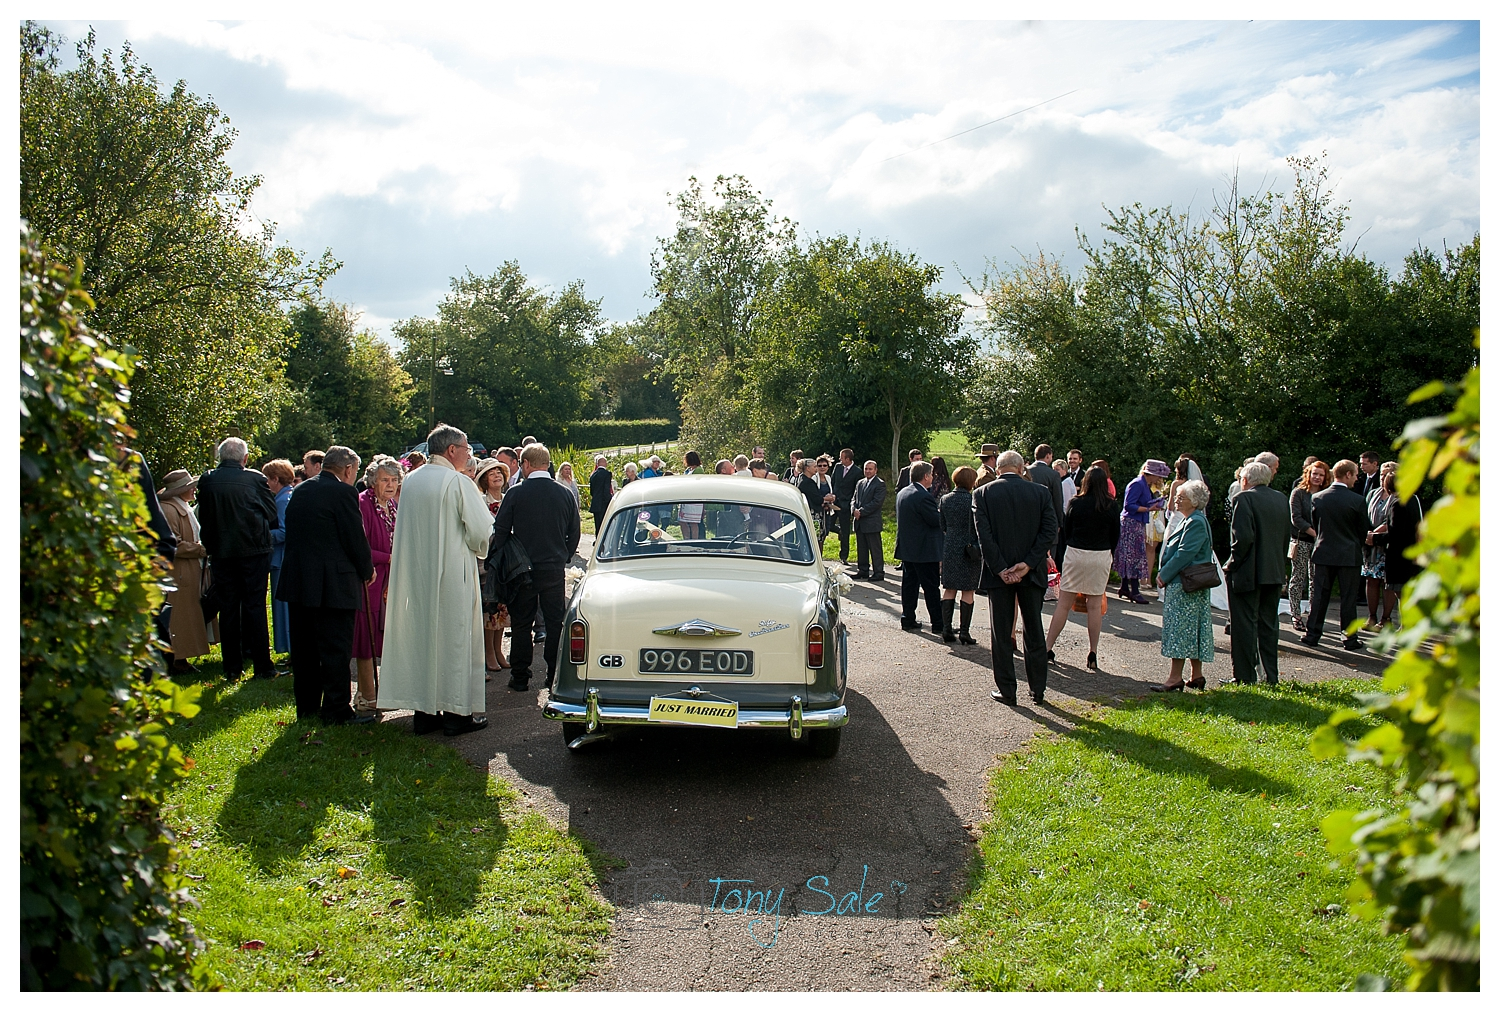 Wedding Photography Colchester_Tony Sale Photography_15